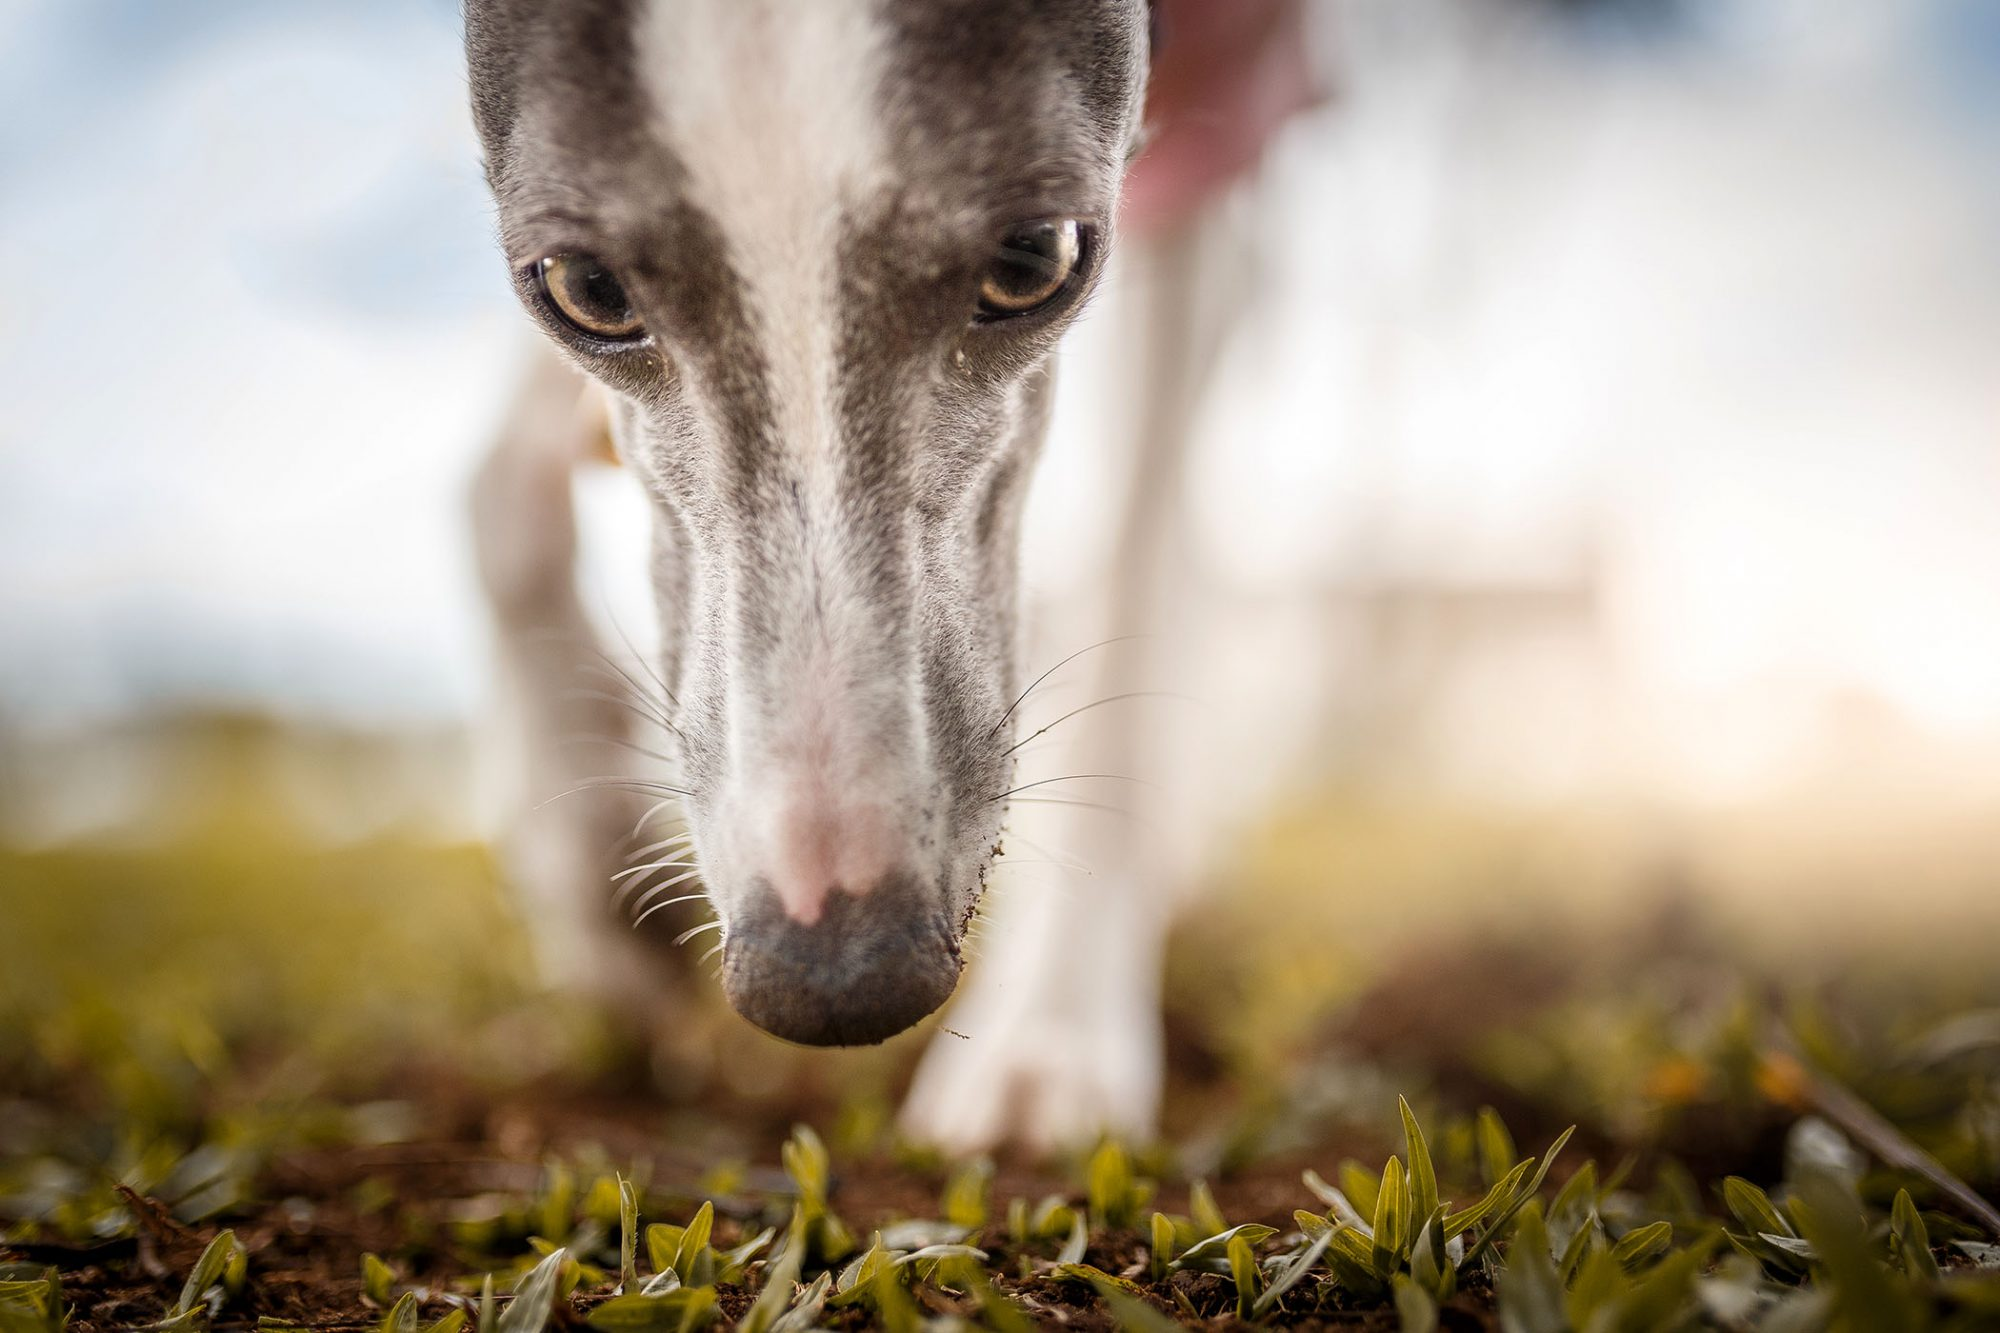 greyhound with long nose sniffing the ground